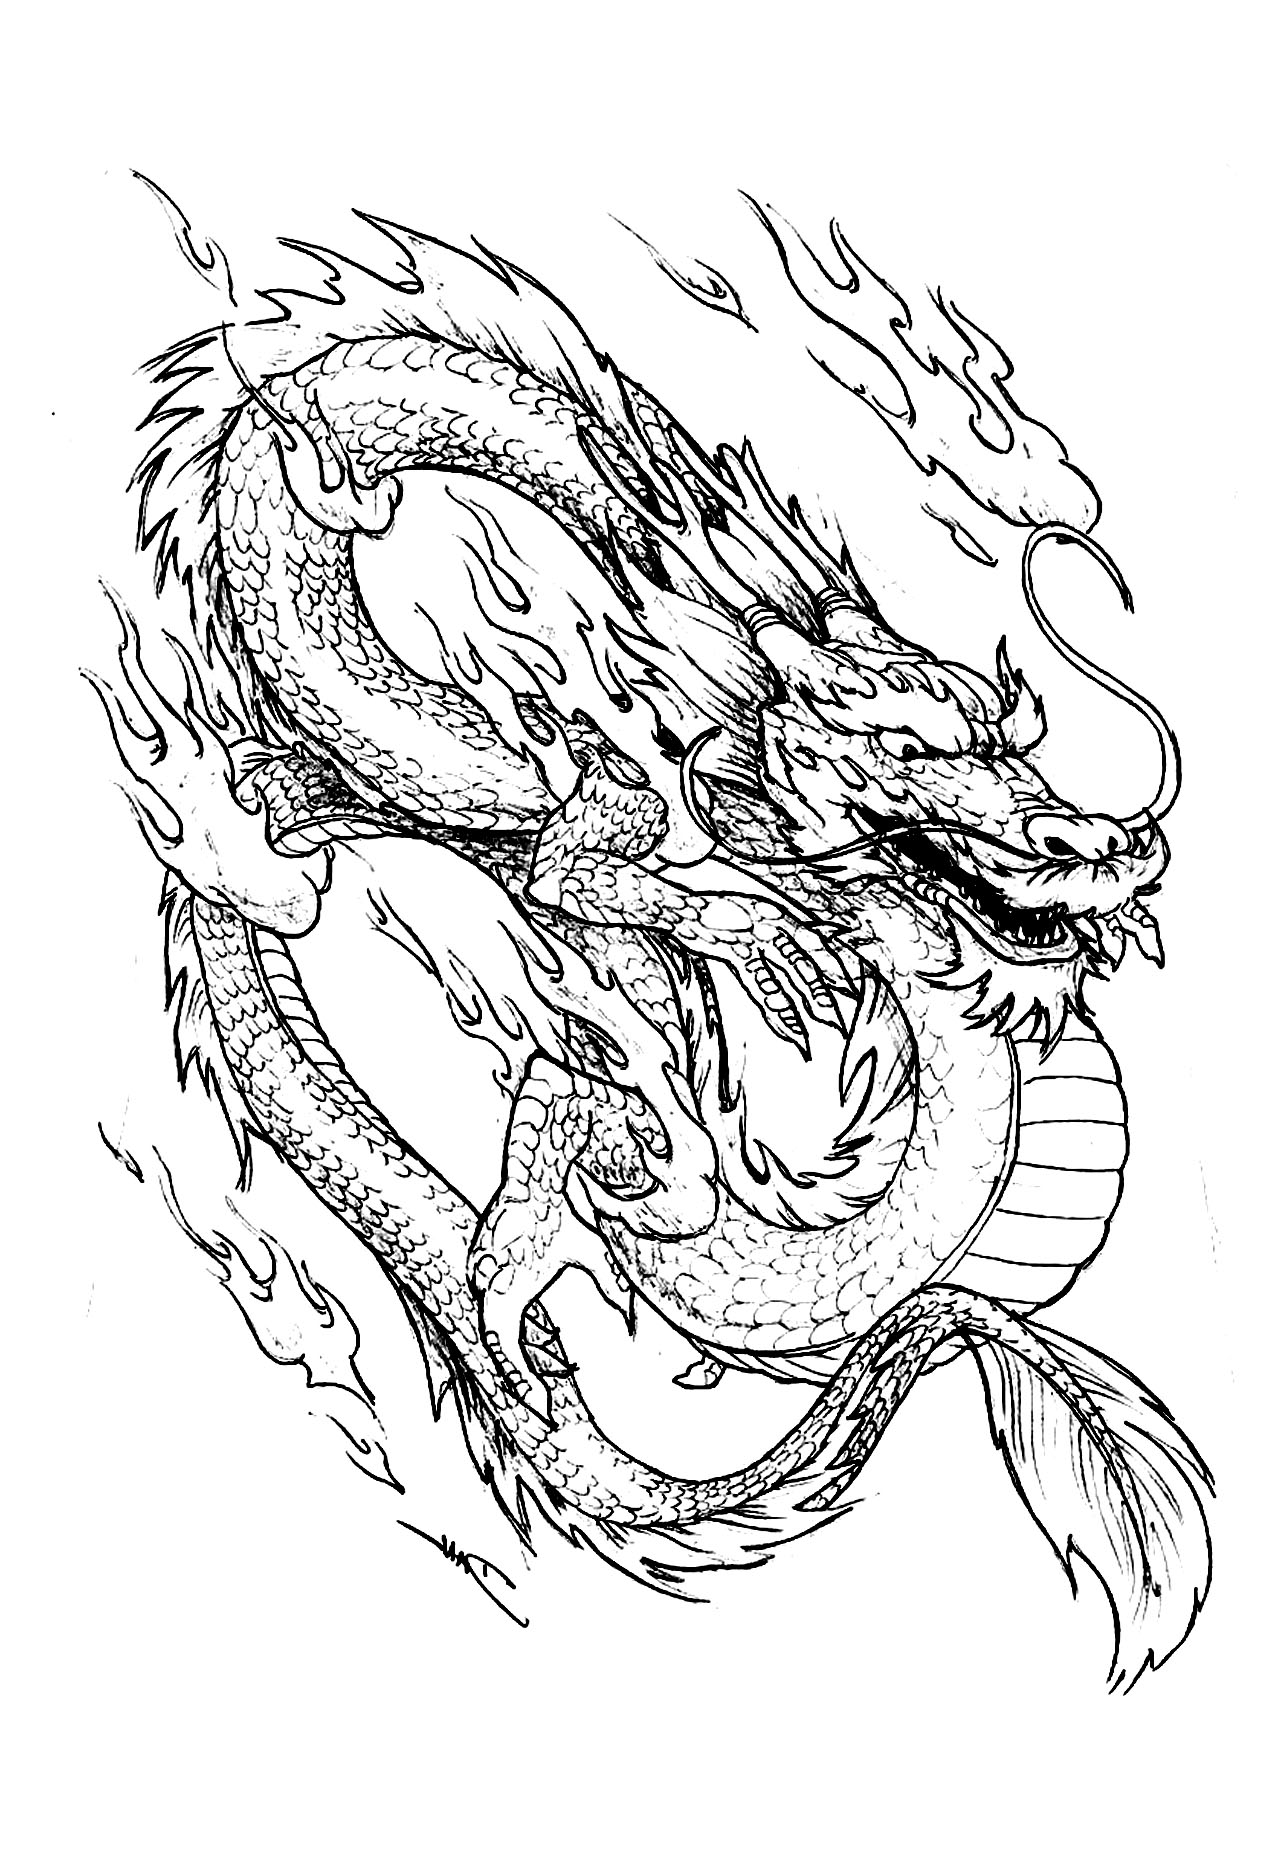 chinese dragon colouring pictures chinese dragon coloring pages getcoloringpages with regard pictures colouring dragon chinese